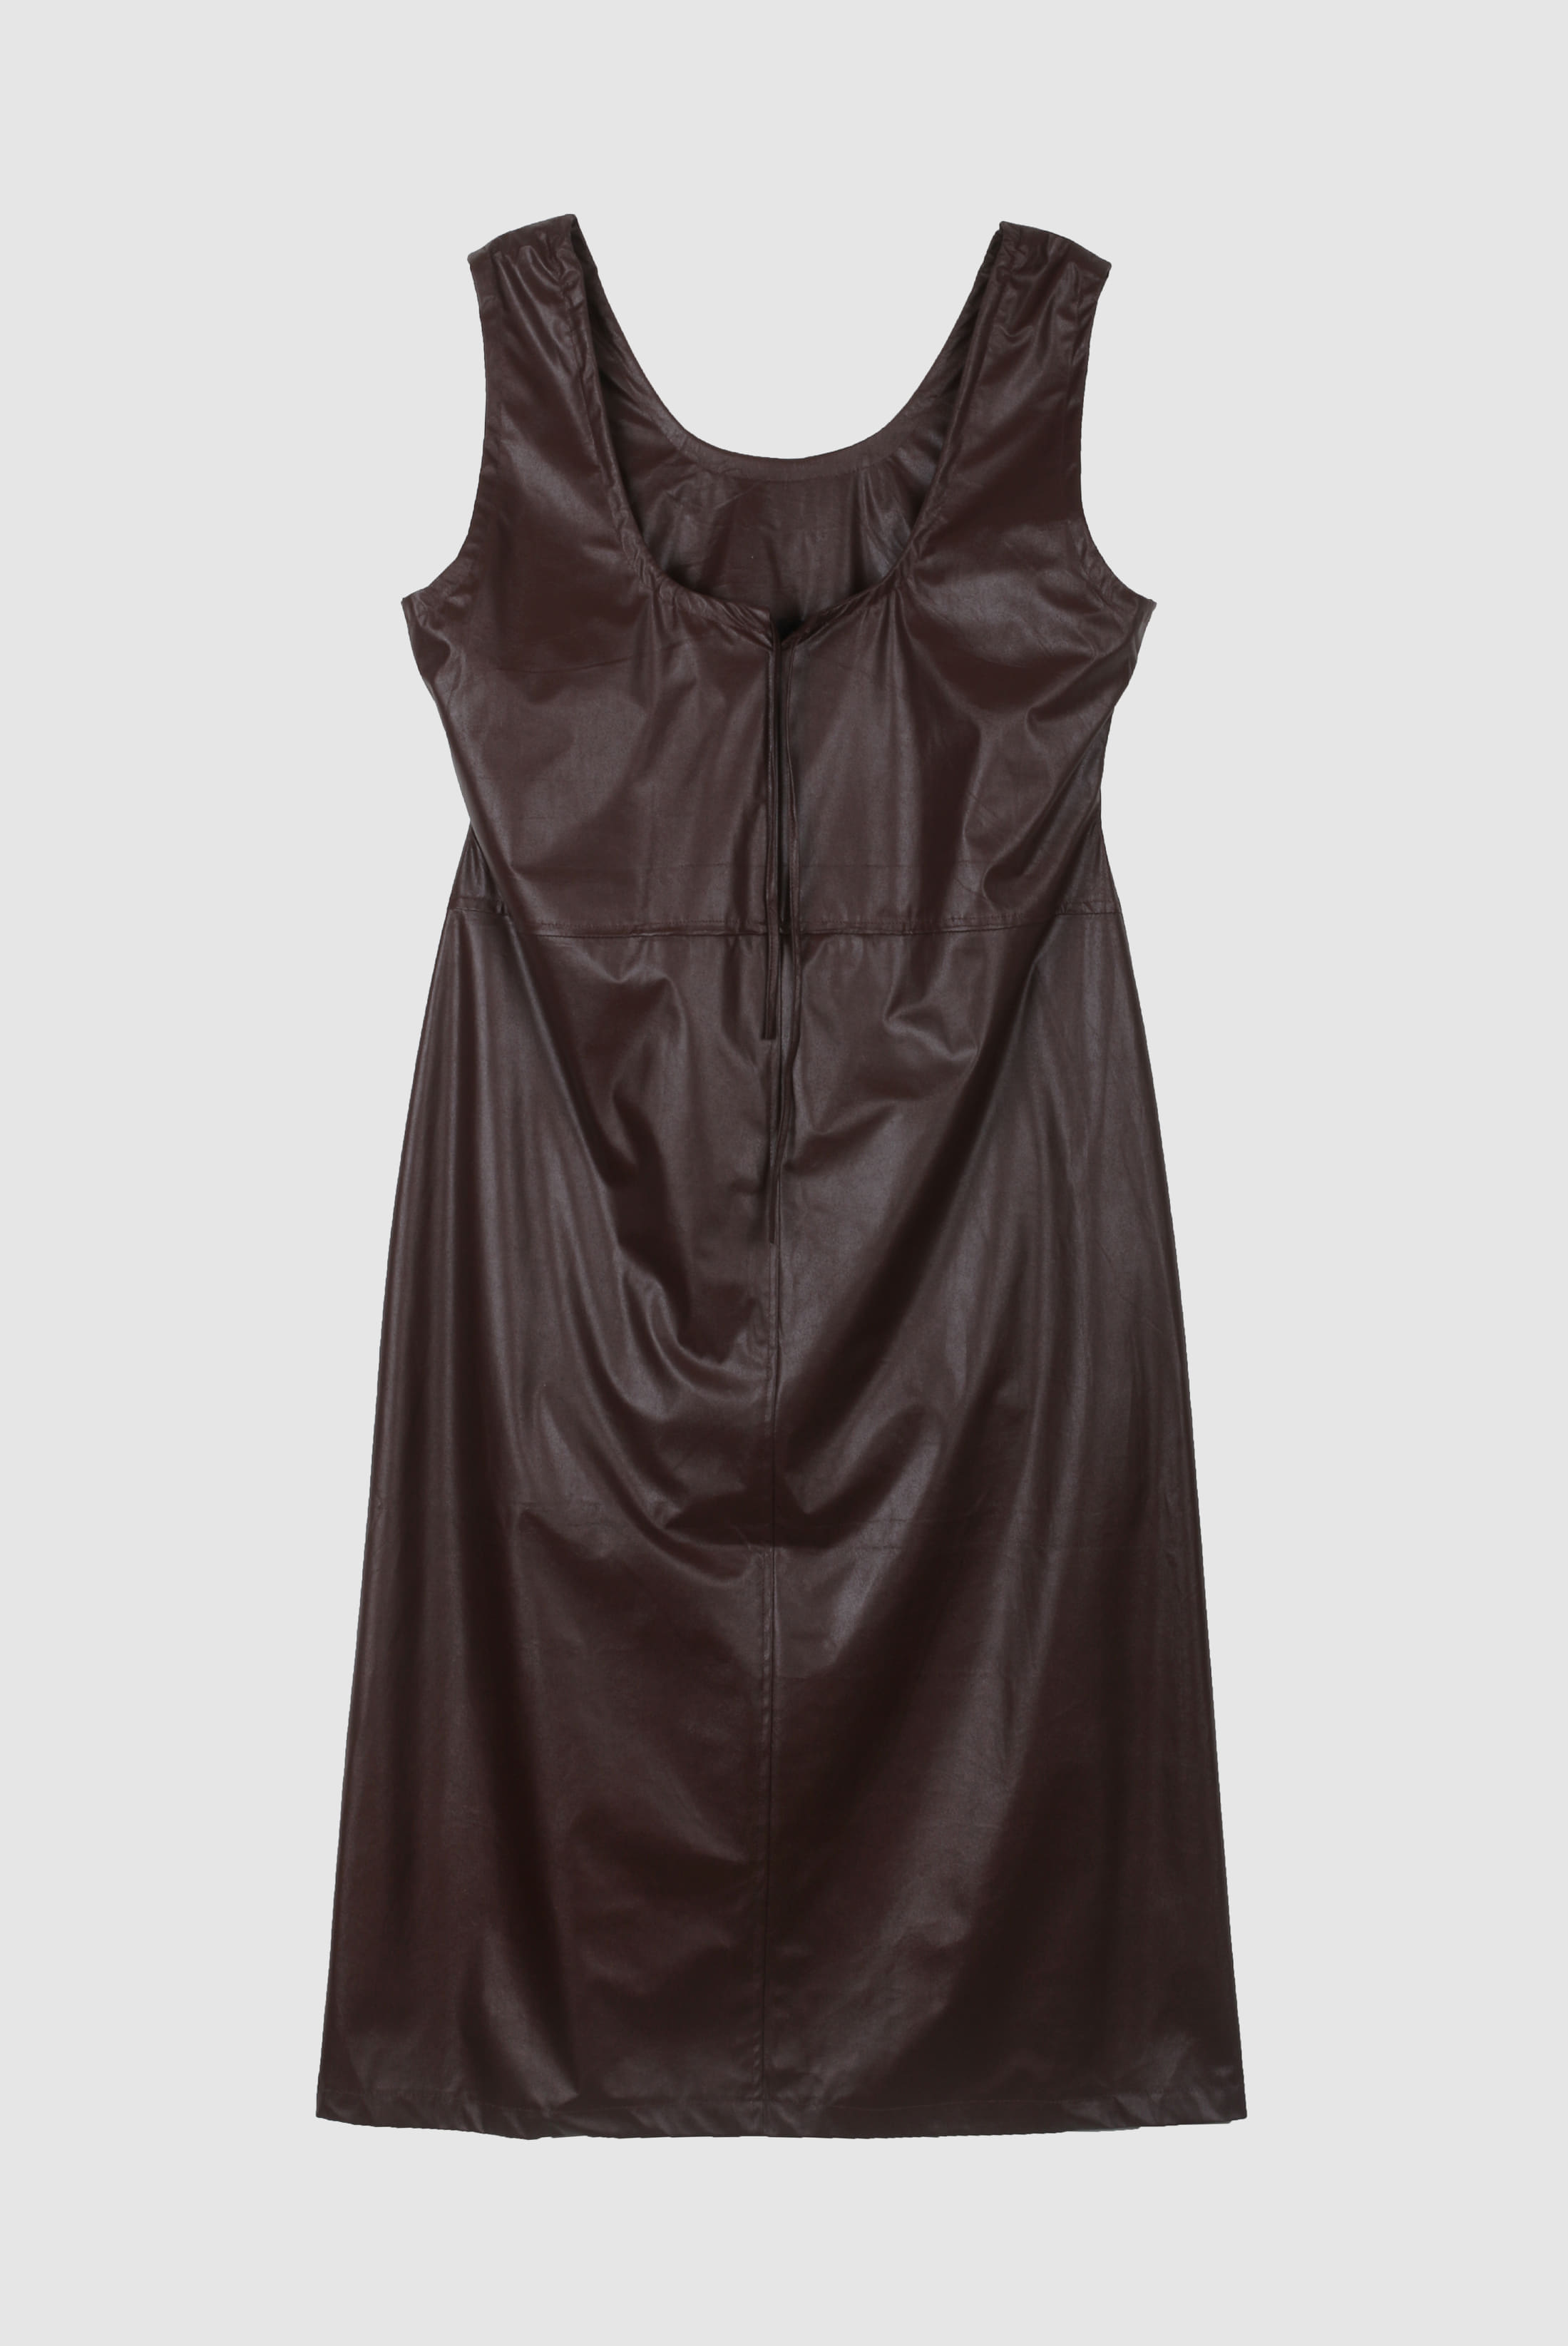 Fake_Leather String Onepiece